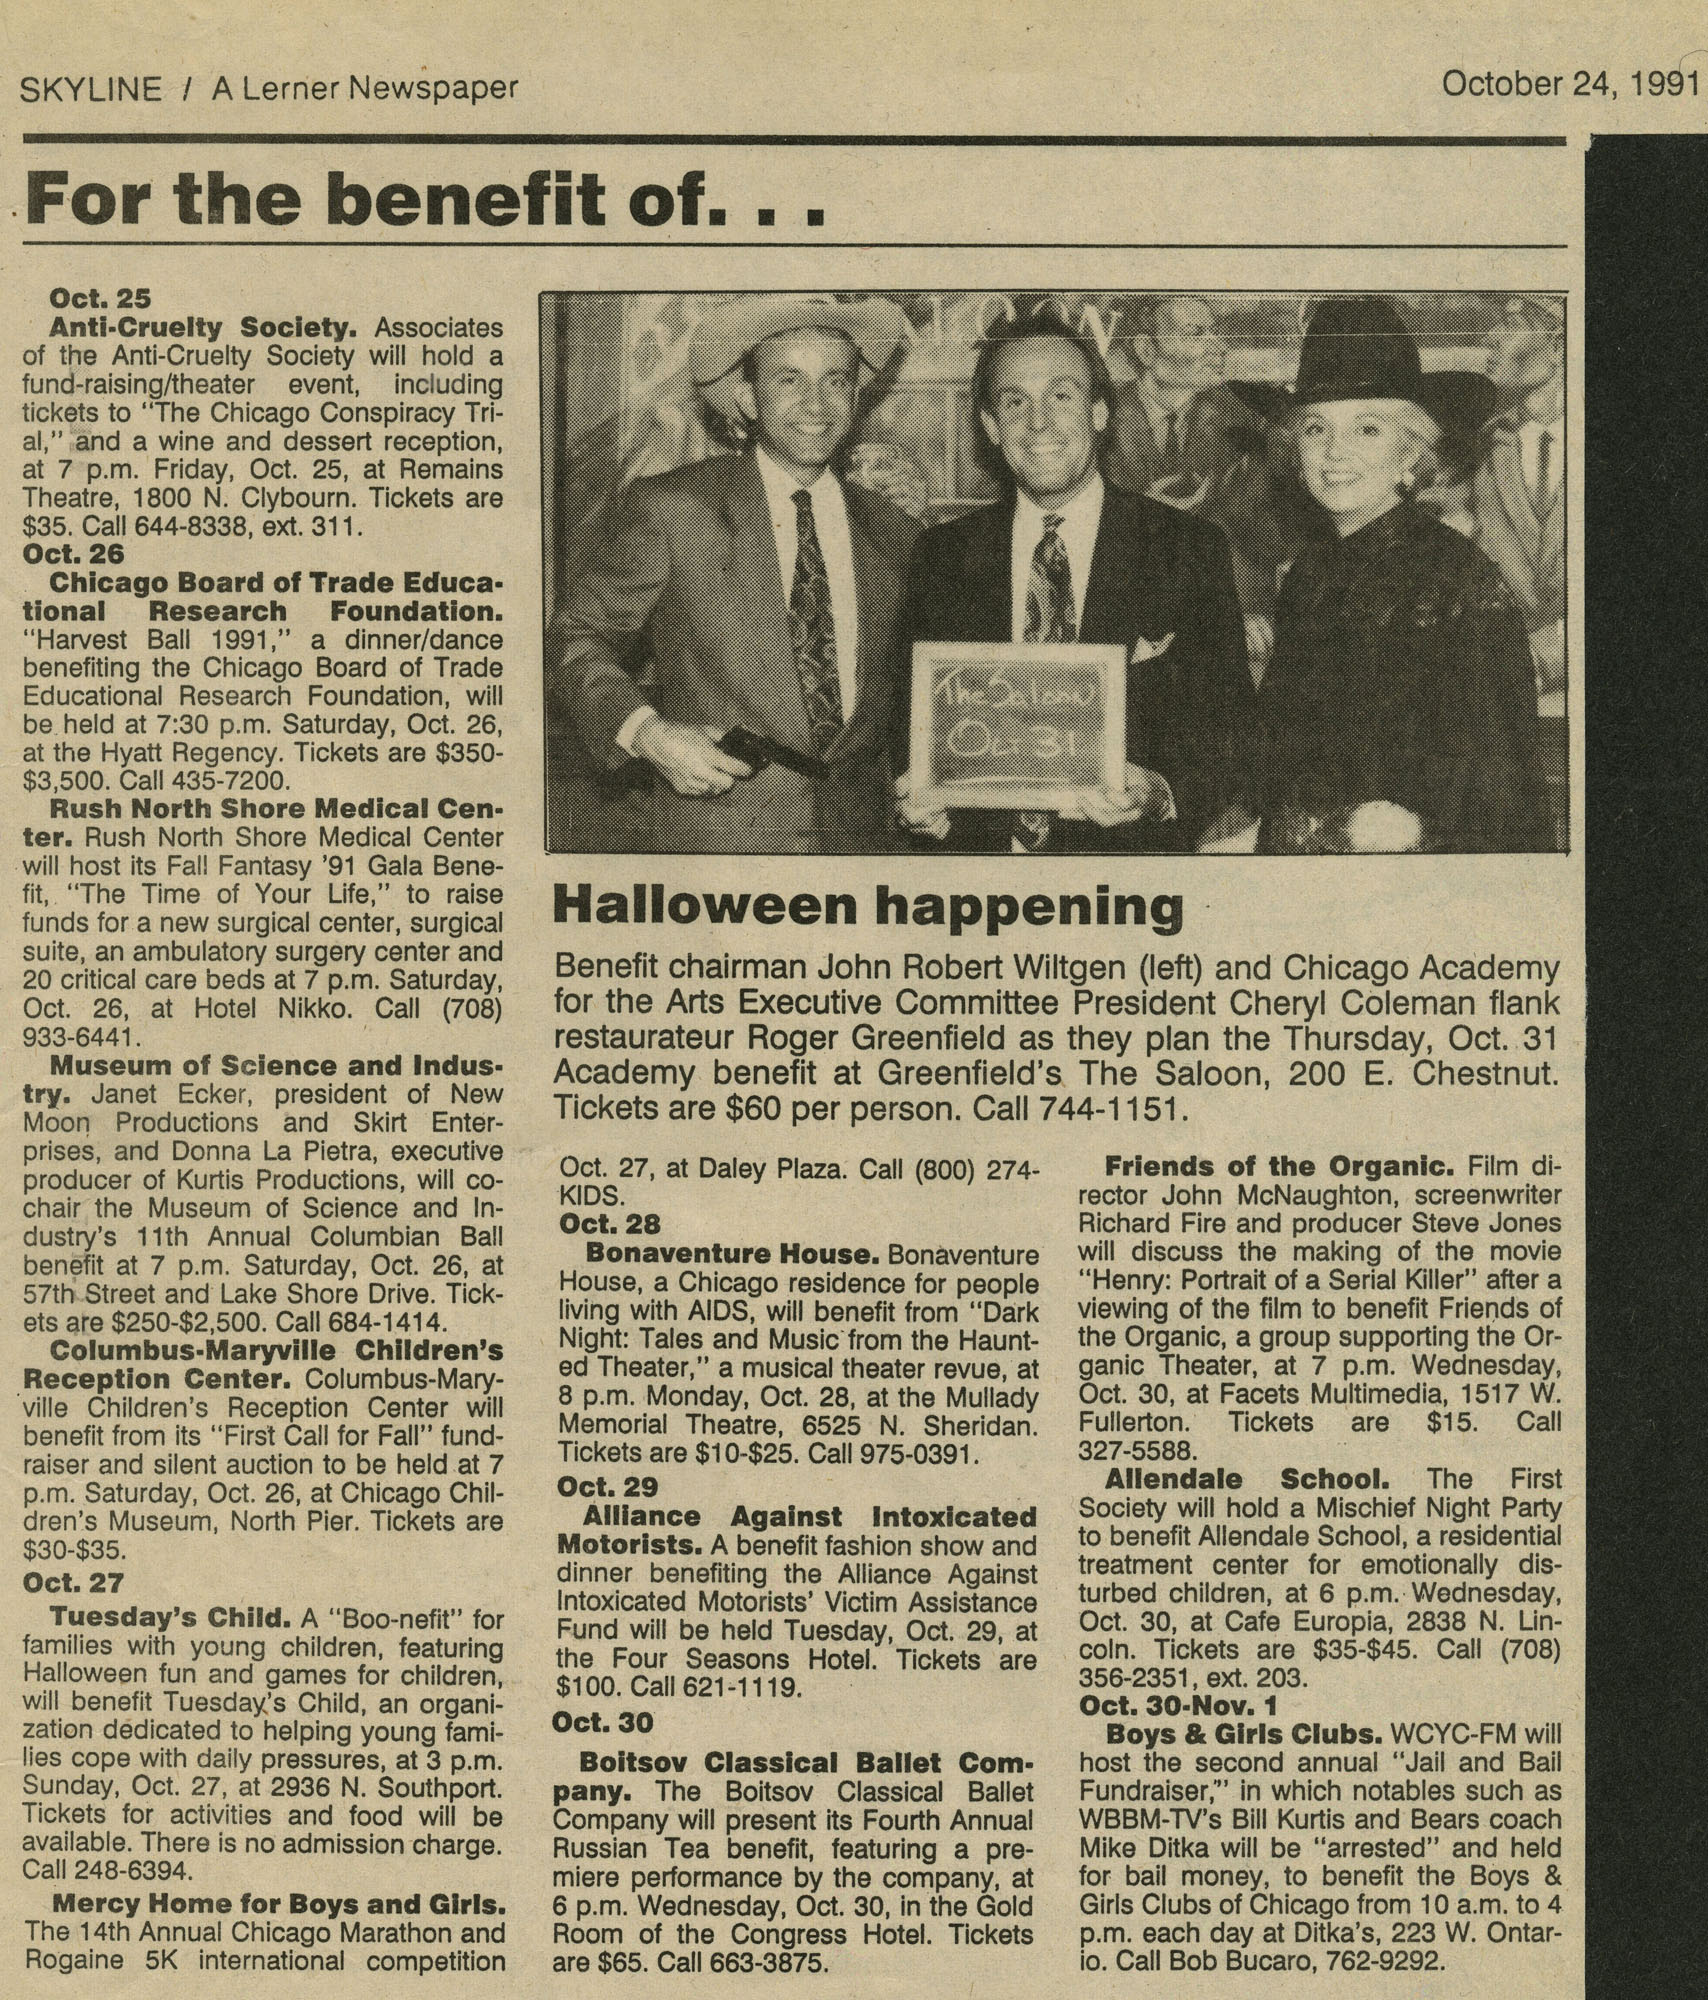 october24,1991 skyline, a lerner newspaper- For the benefit of...